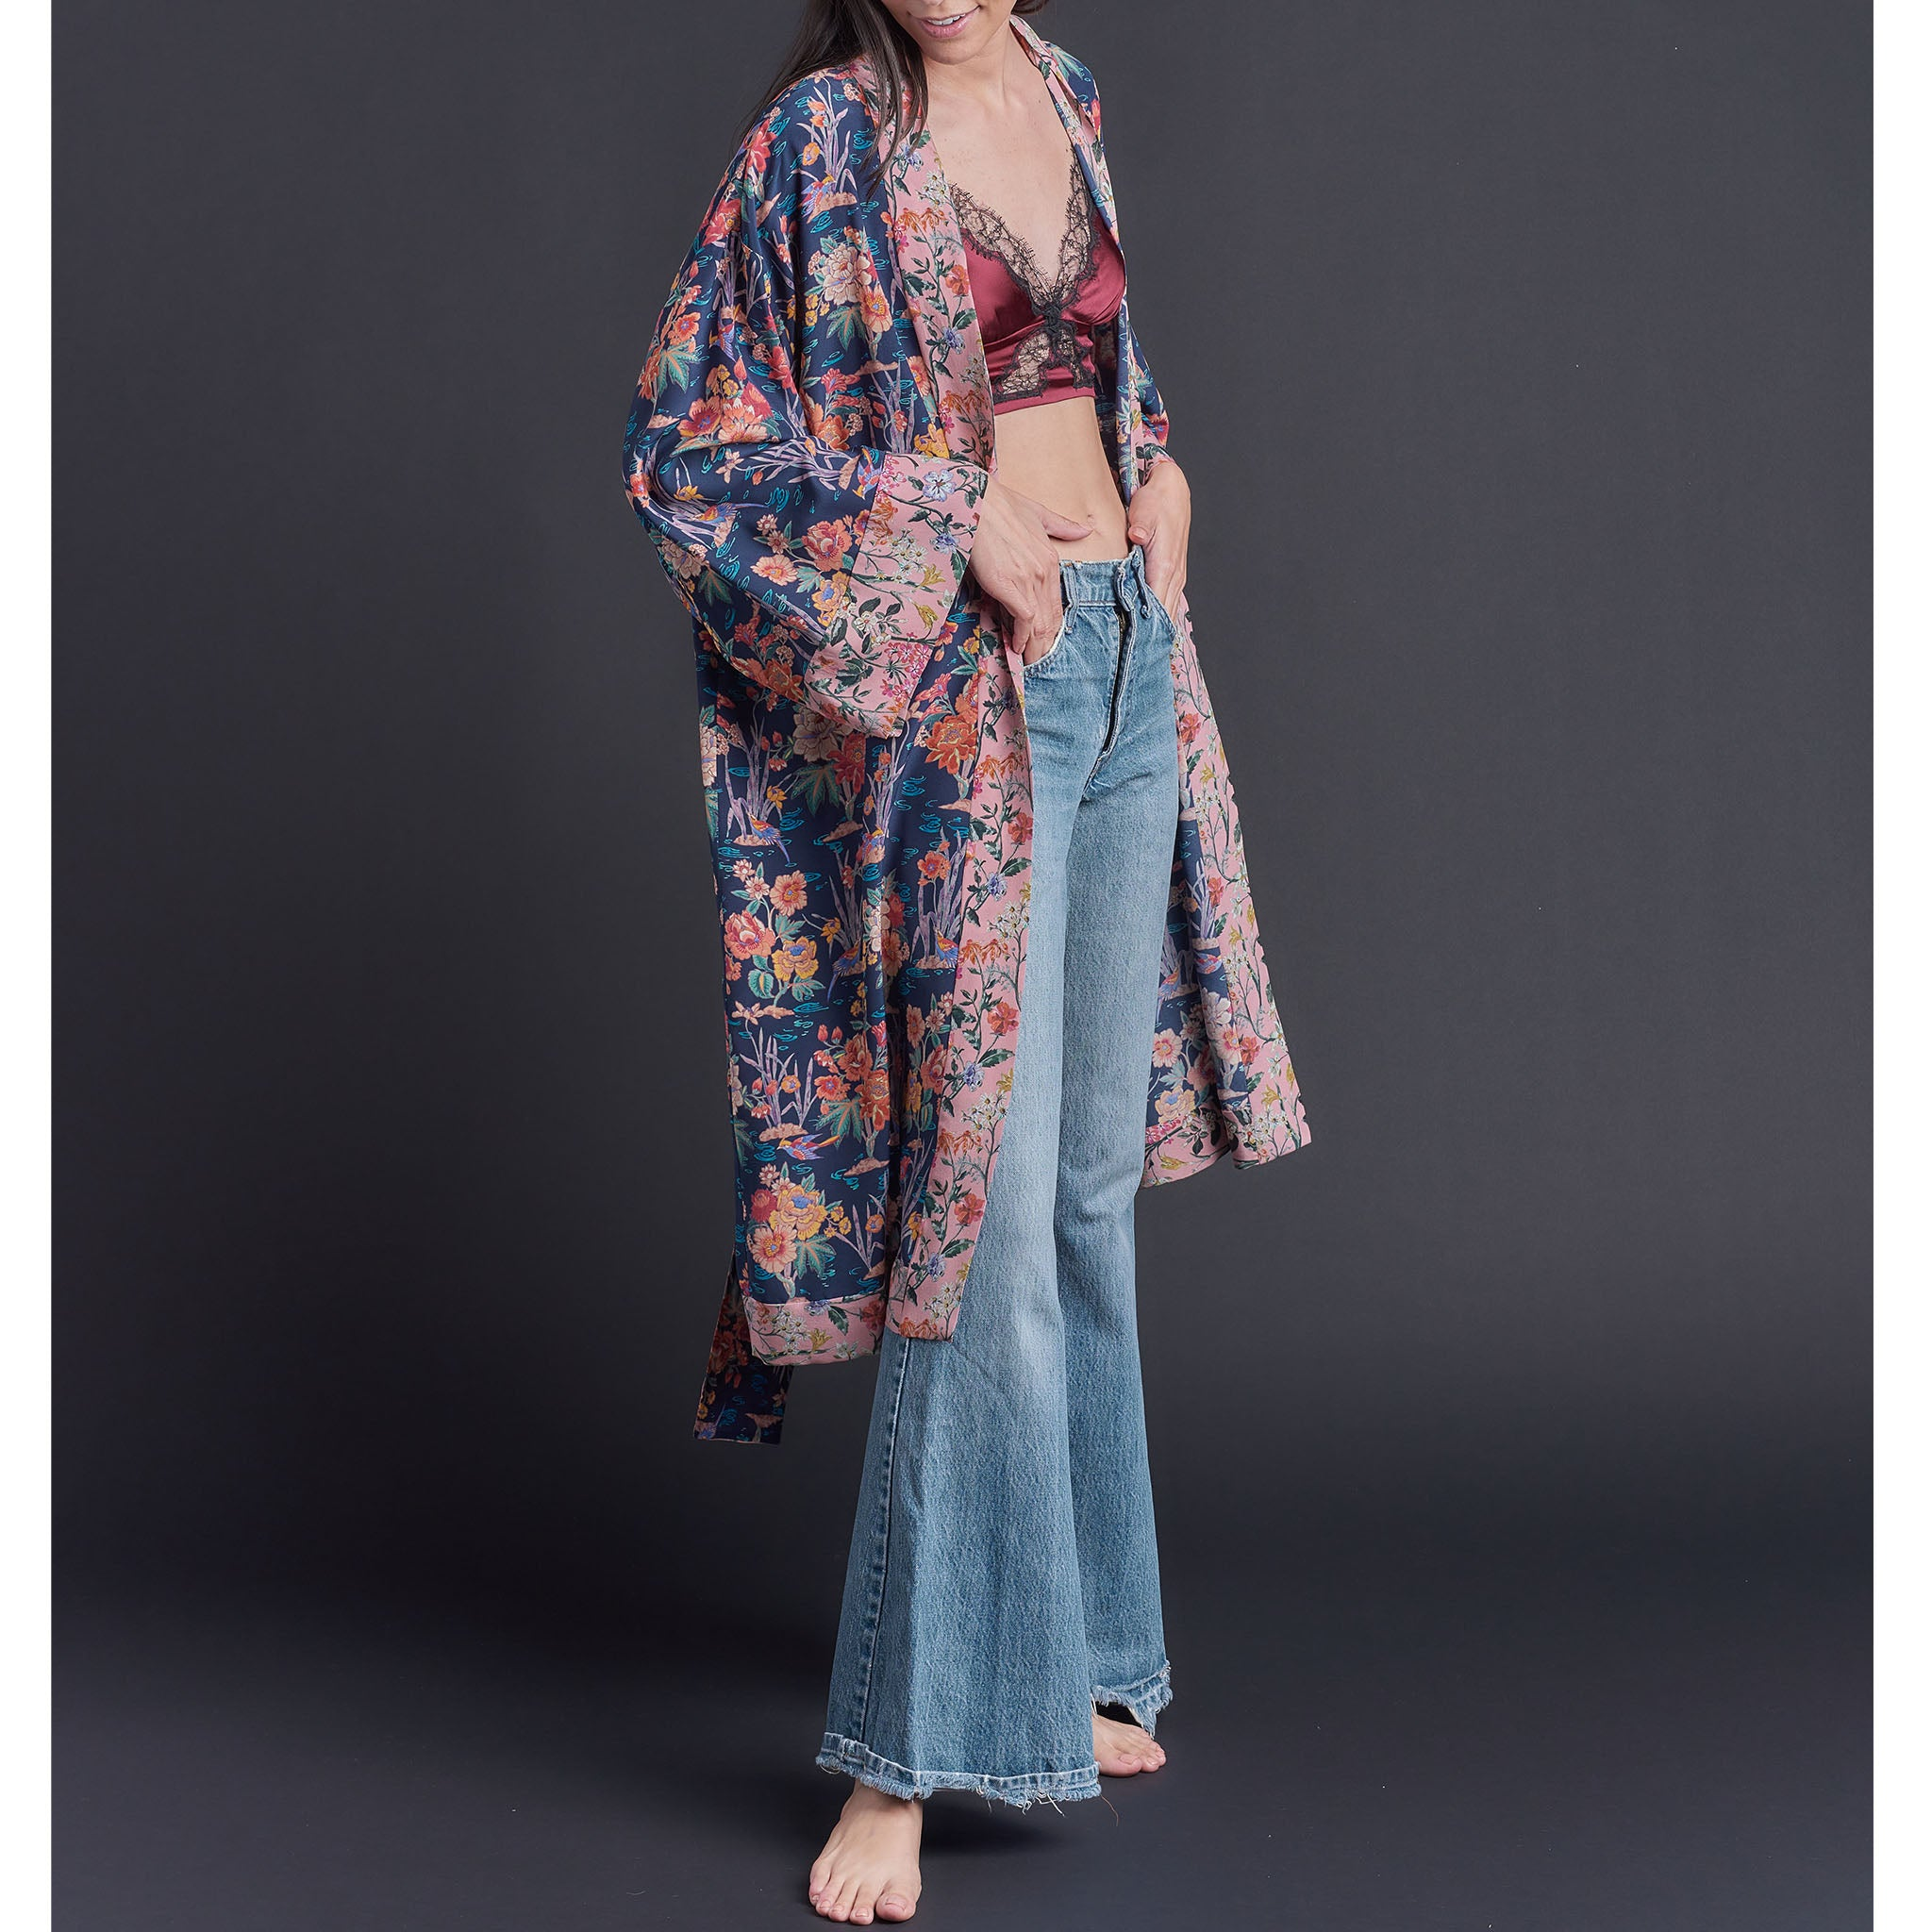 One of a Kind Selene Dressing Gown in Blue Lake Ada  Liberty Silk Crepe De Chine